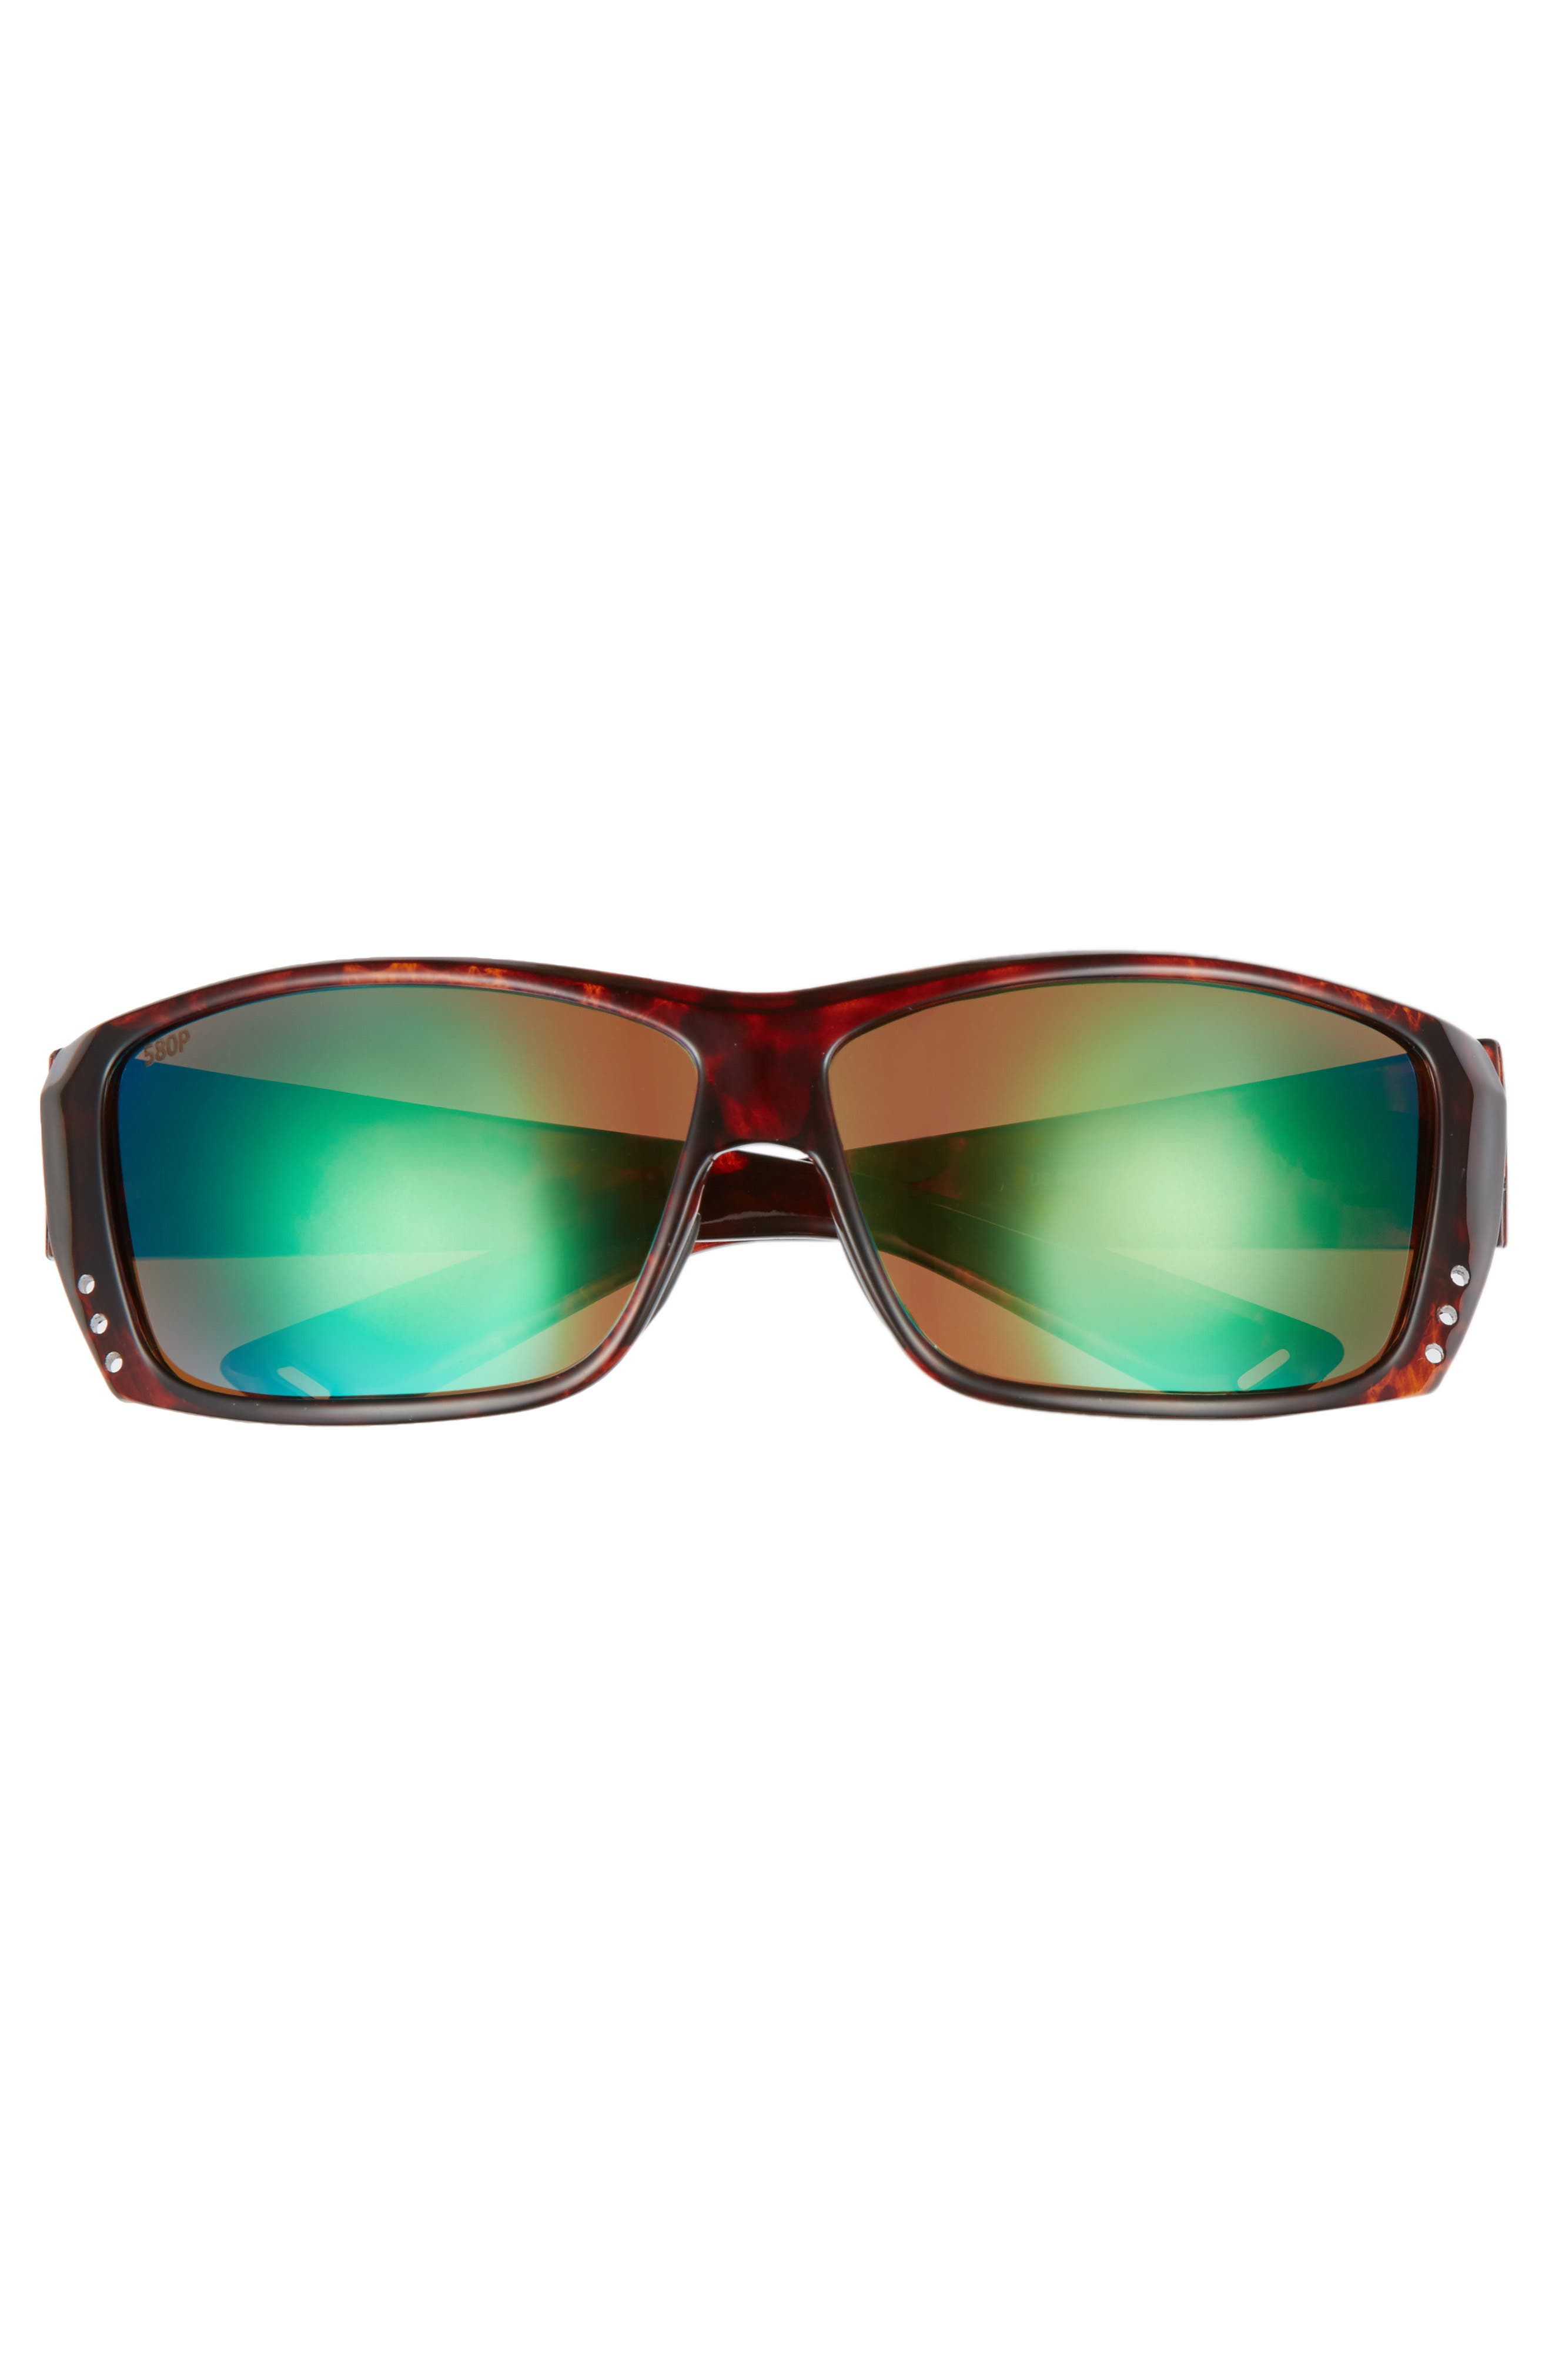 Cat Cay 60mm Polarized Sunglasses,                             Alternate thumbnail 2, color,                             Tortoise/ Green Mirror